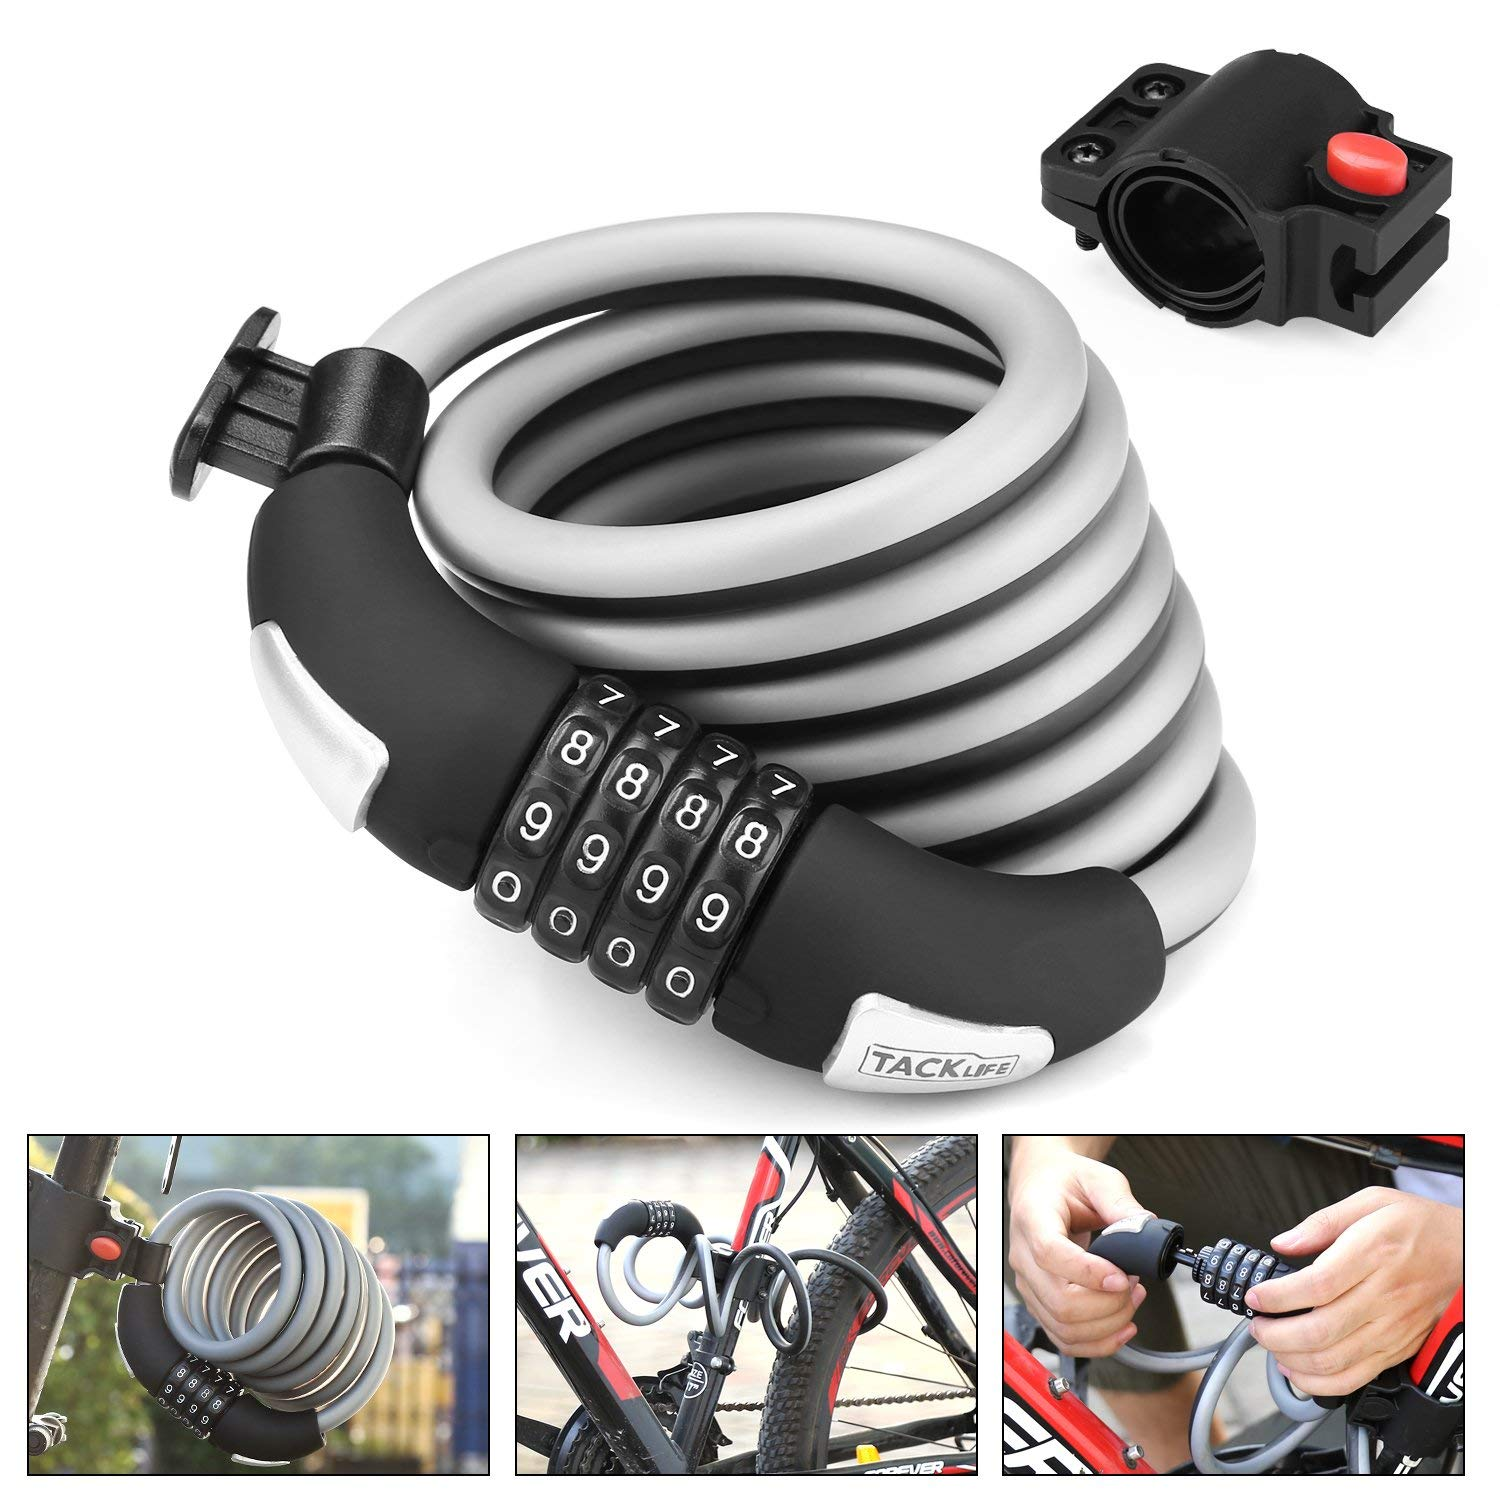 TACKLIFE Bike Lock, 6-Feet Heavy Duty Bike Lock Cable Self Coiling Resettable Combination Cable Bike Locks with Complimentary Mounting Bracket, 6 Feet x 1/2 Inch - HCL2C